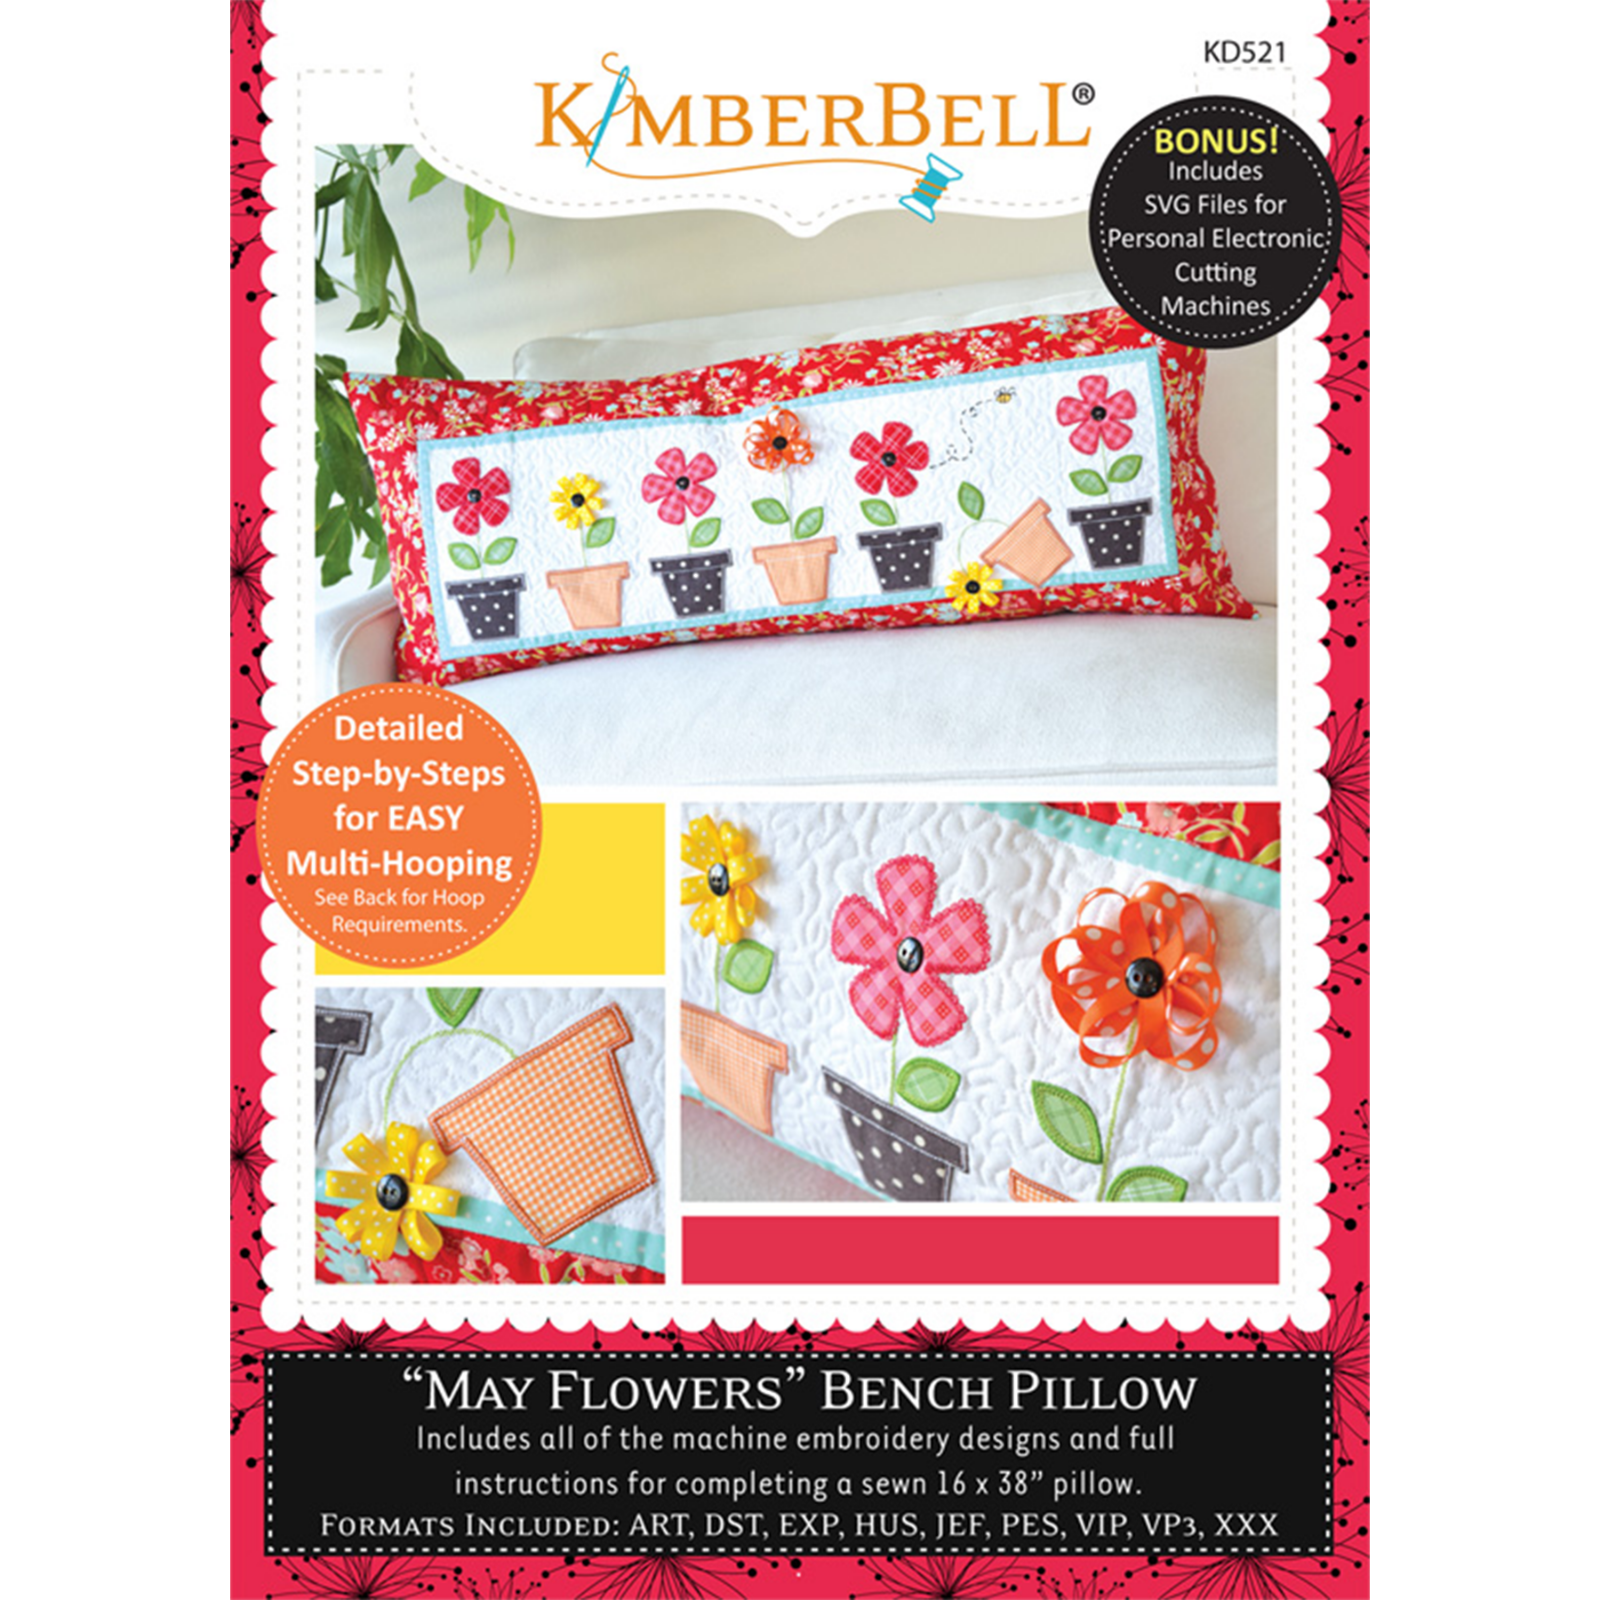 KIMBERBELL MAY FLOWERS BENCH PILLOW ME CD